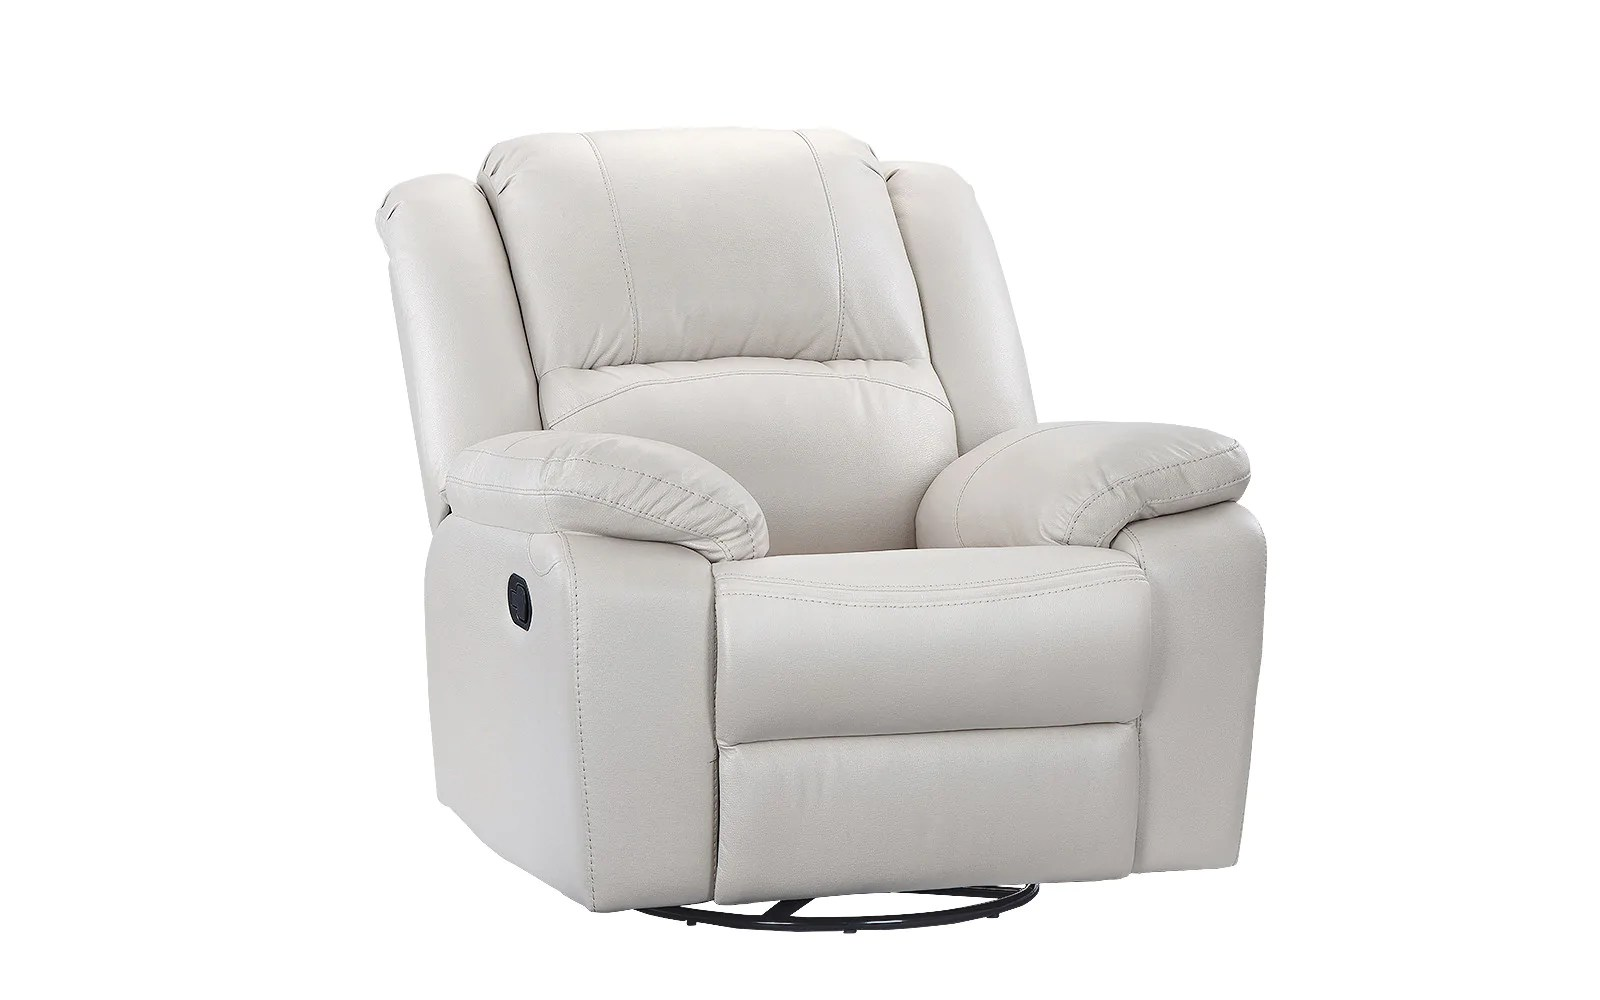 air sofa chair price in stan whittemore sherrill leather sofas recliners reclining loveseats recliner chairs sofamania